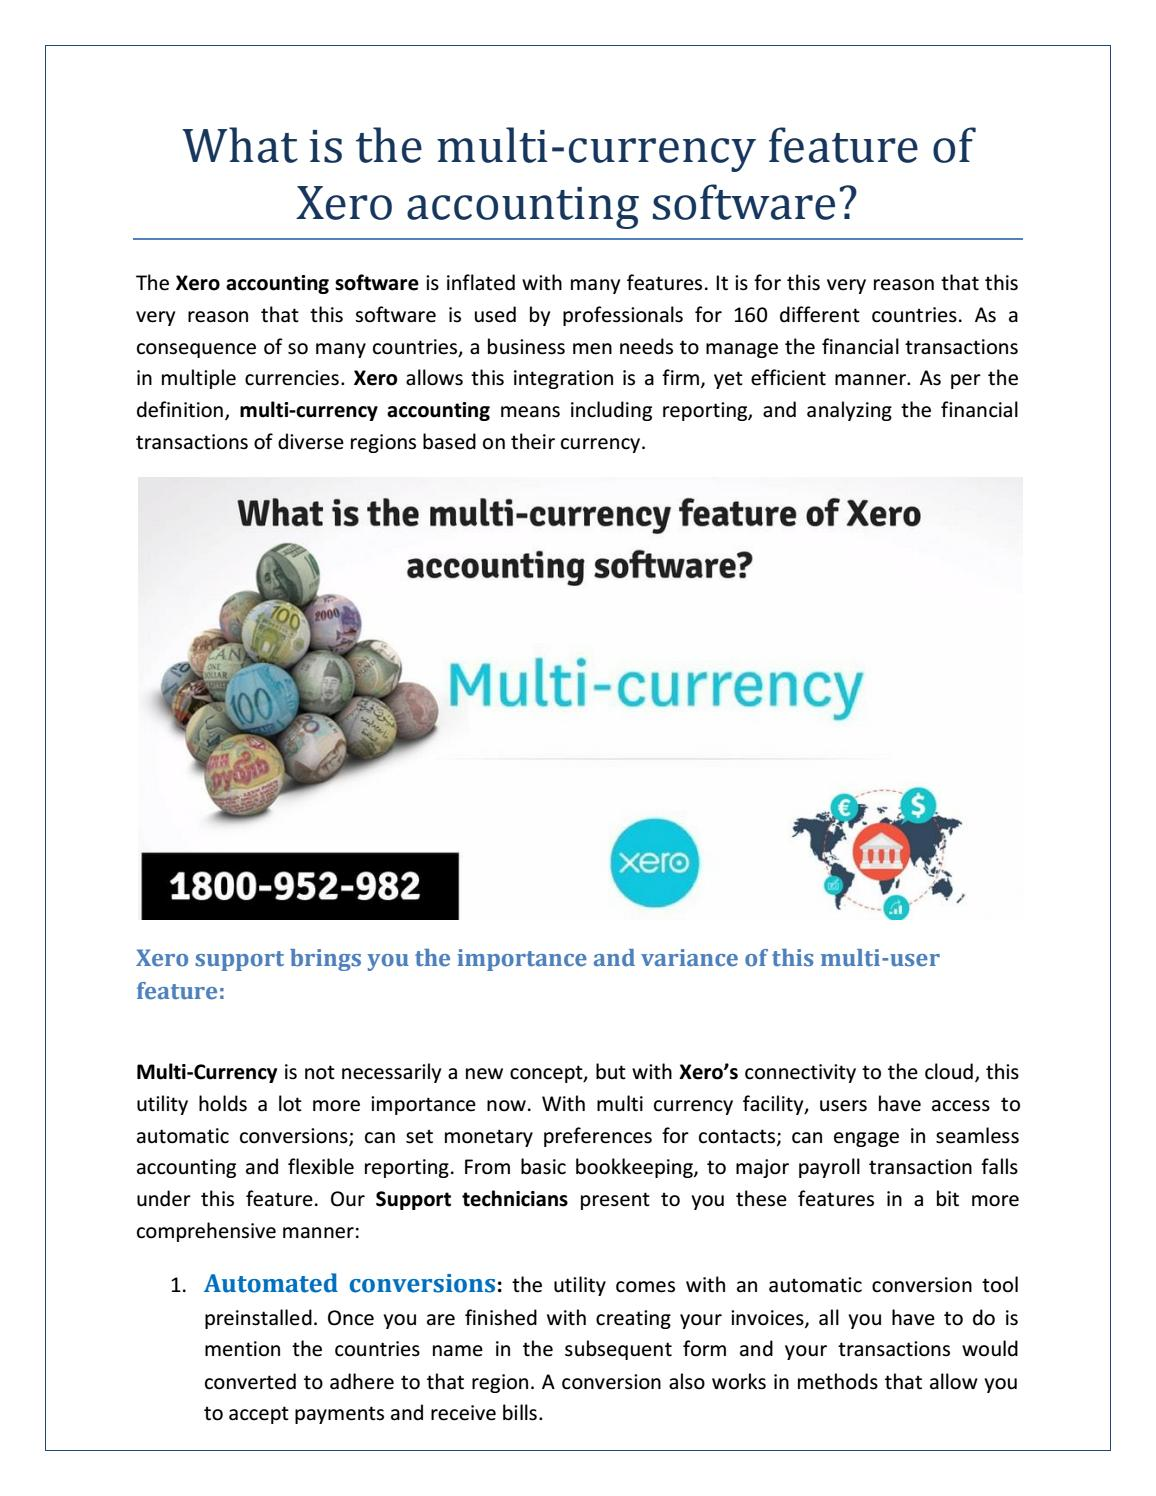 What is the multi currency feature of xero accounting